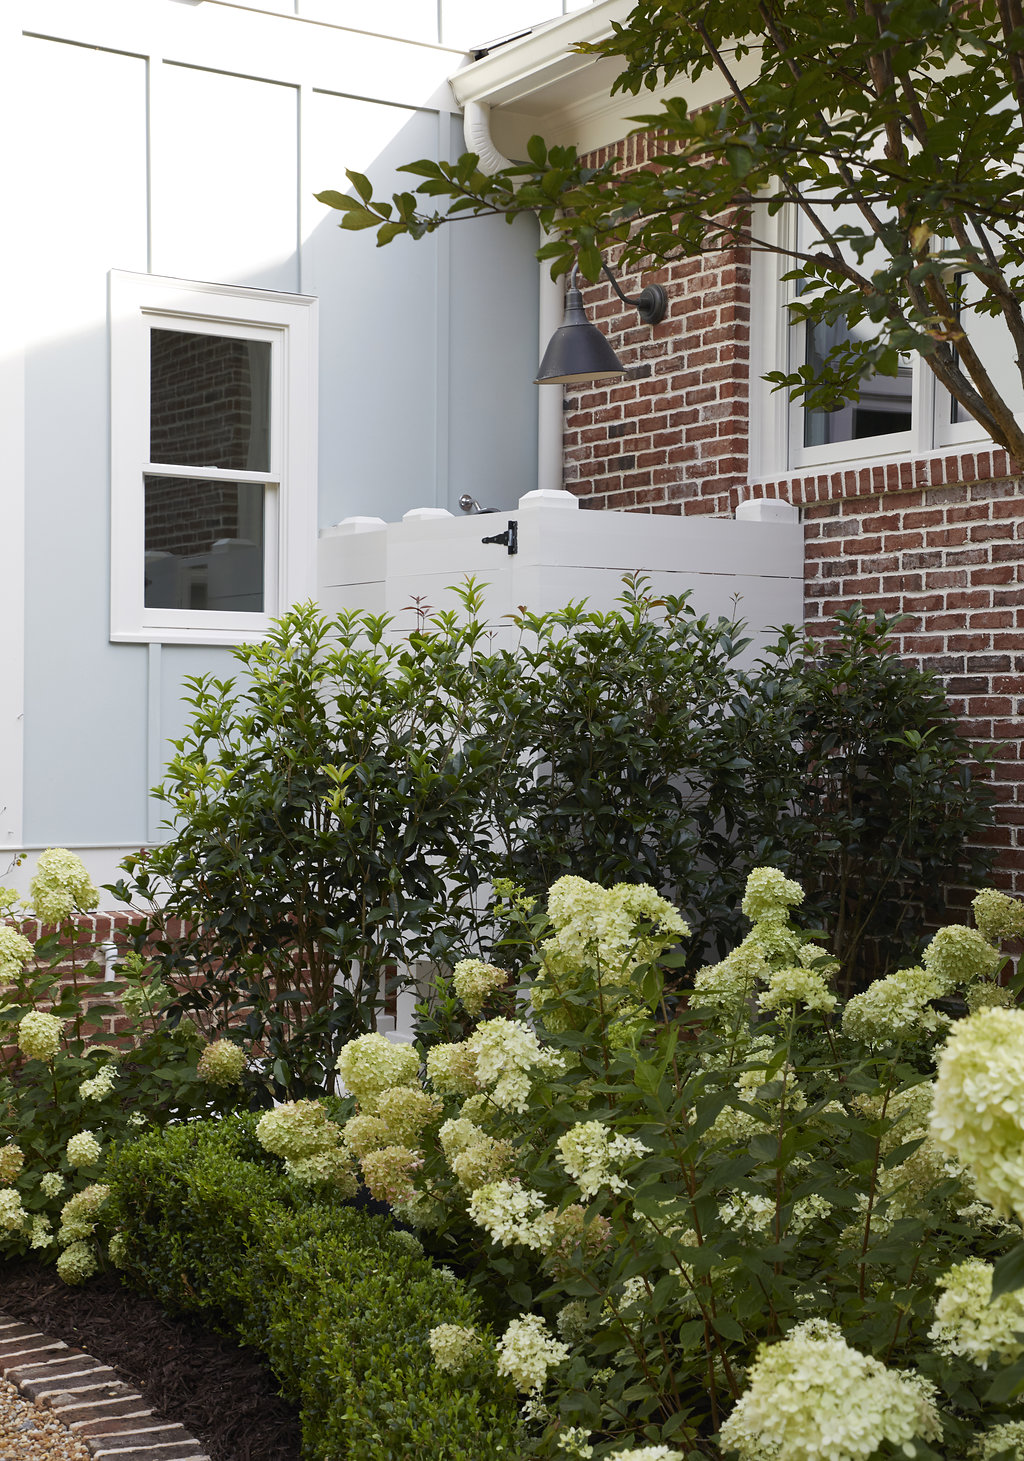 Hydrangea bushes and trees next to the home.